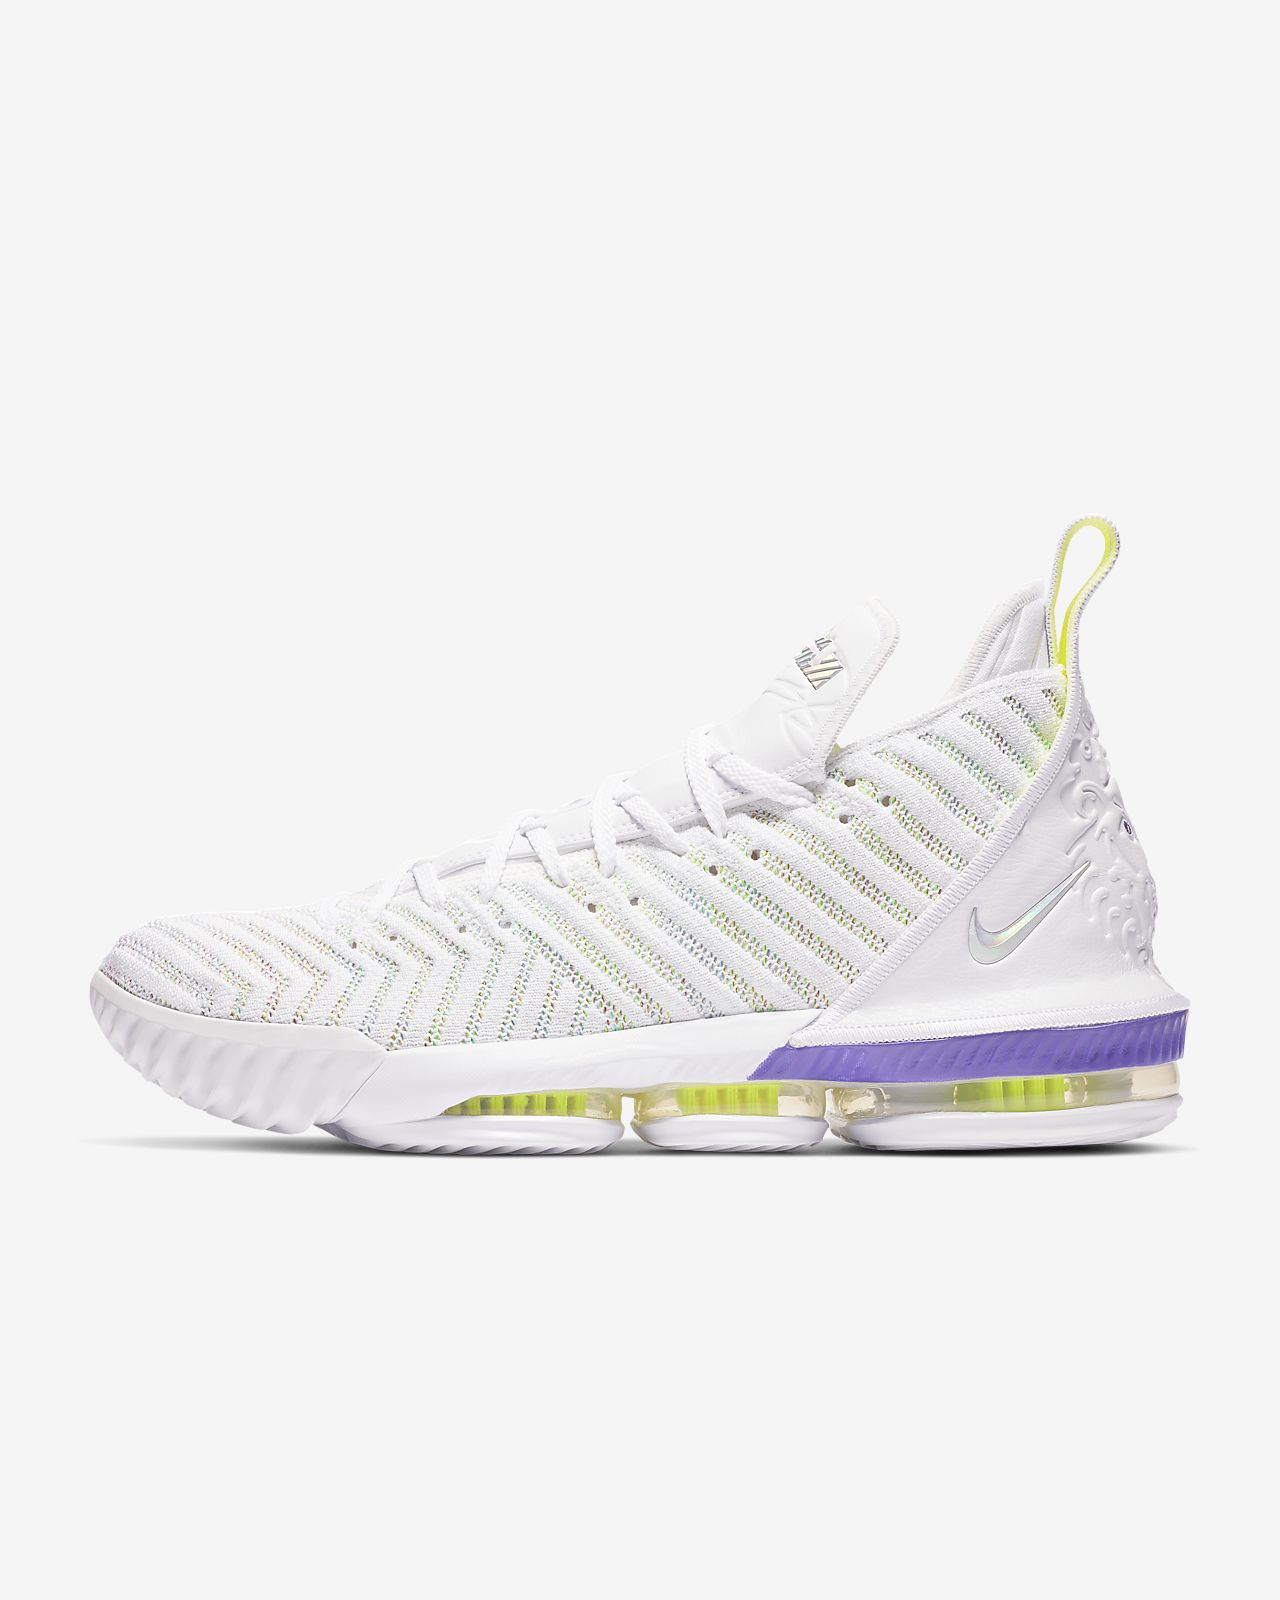 LeBron 16 Basketball Shoe